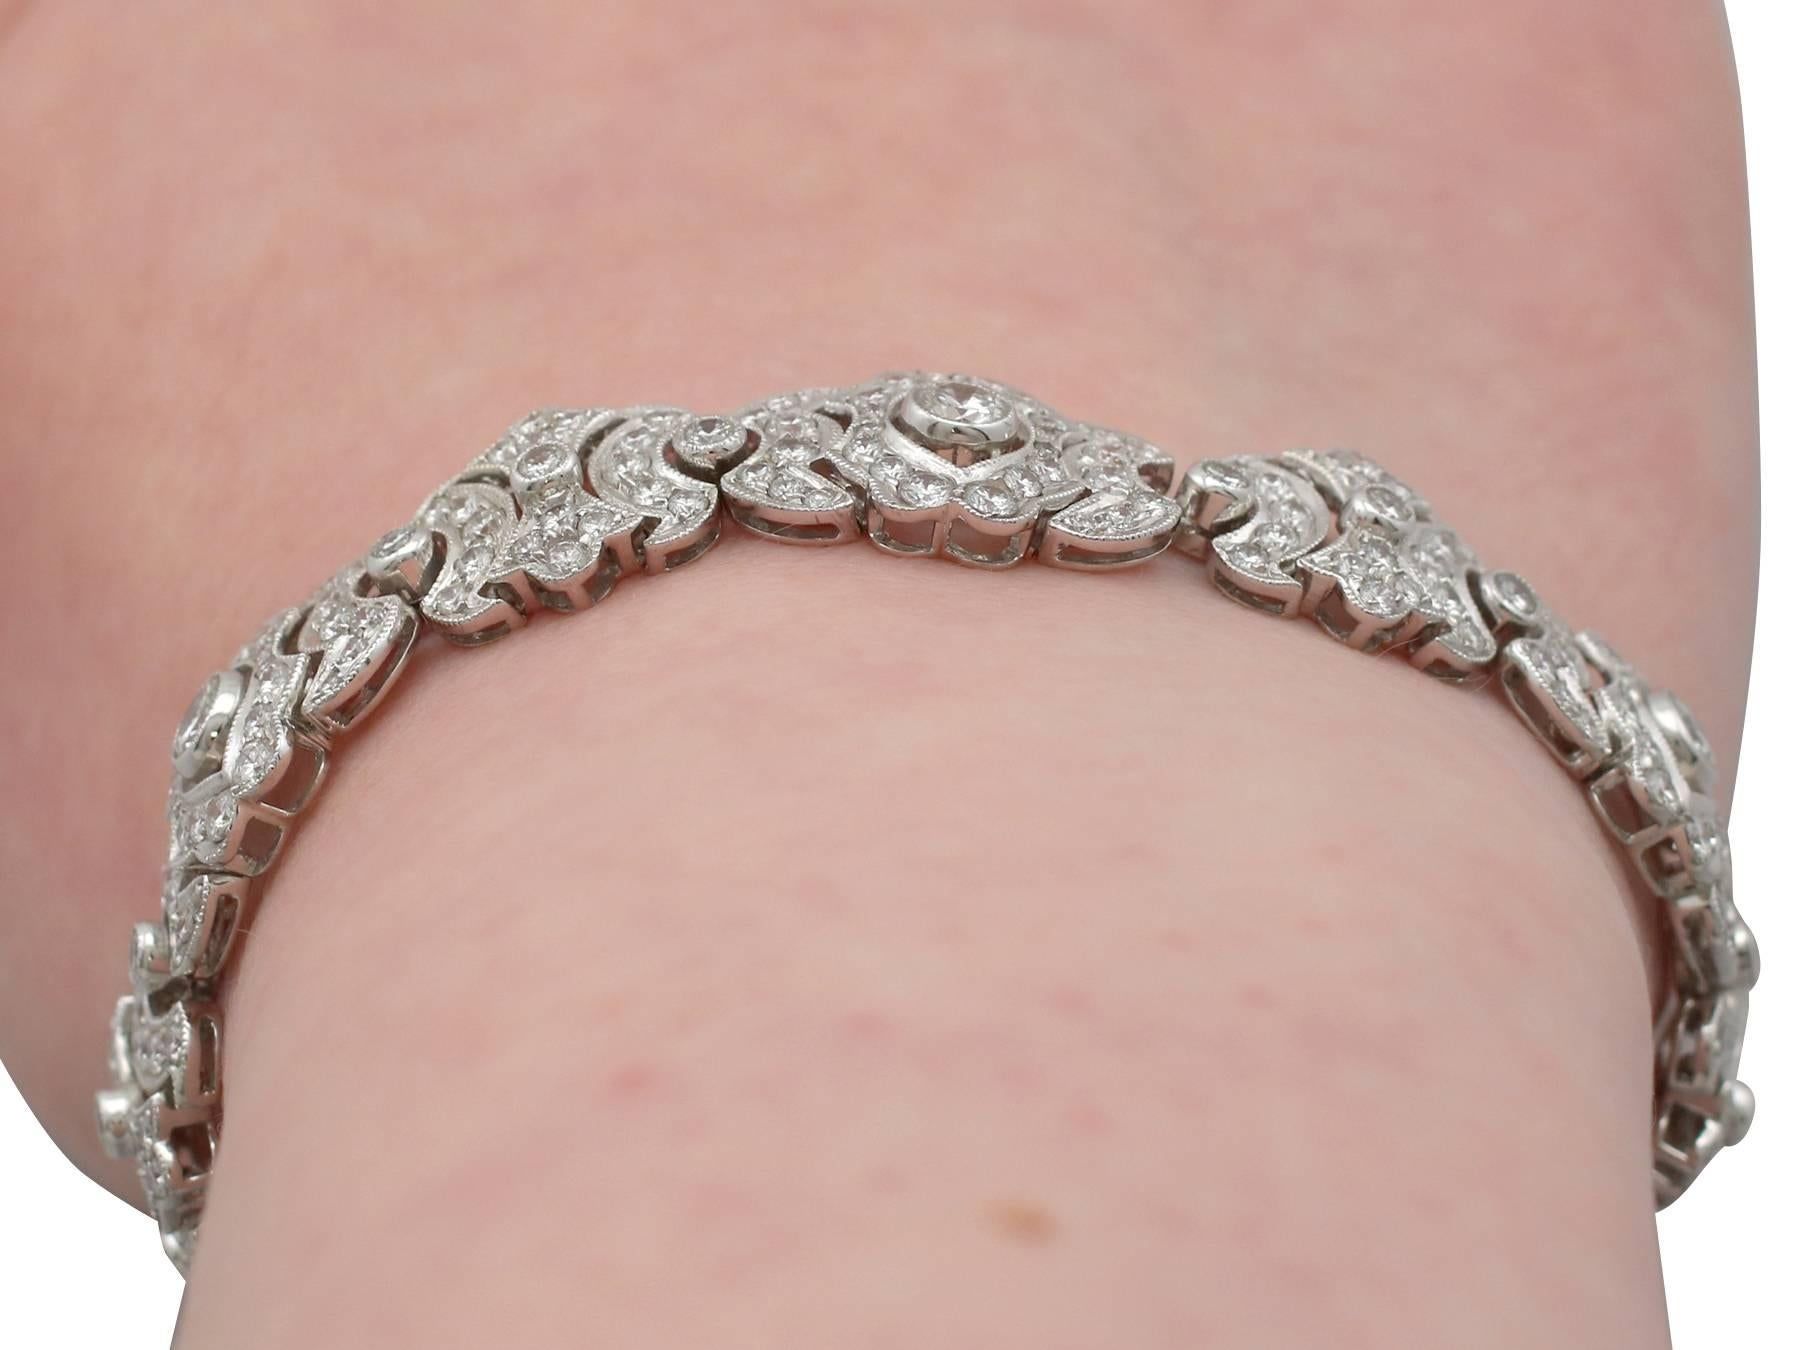 1980s 7.22 Carat Diamond and White Gold Bracelet For Sale at 1stdibs